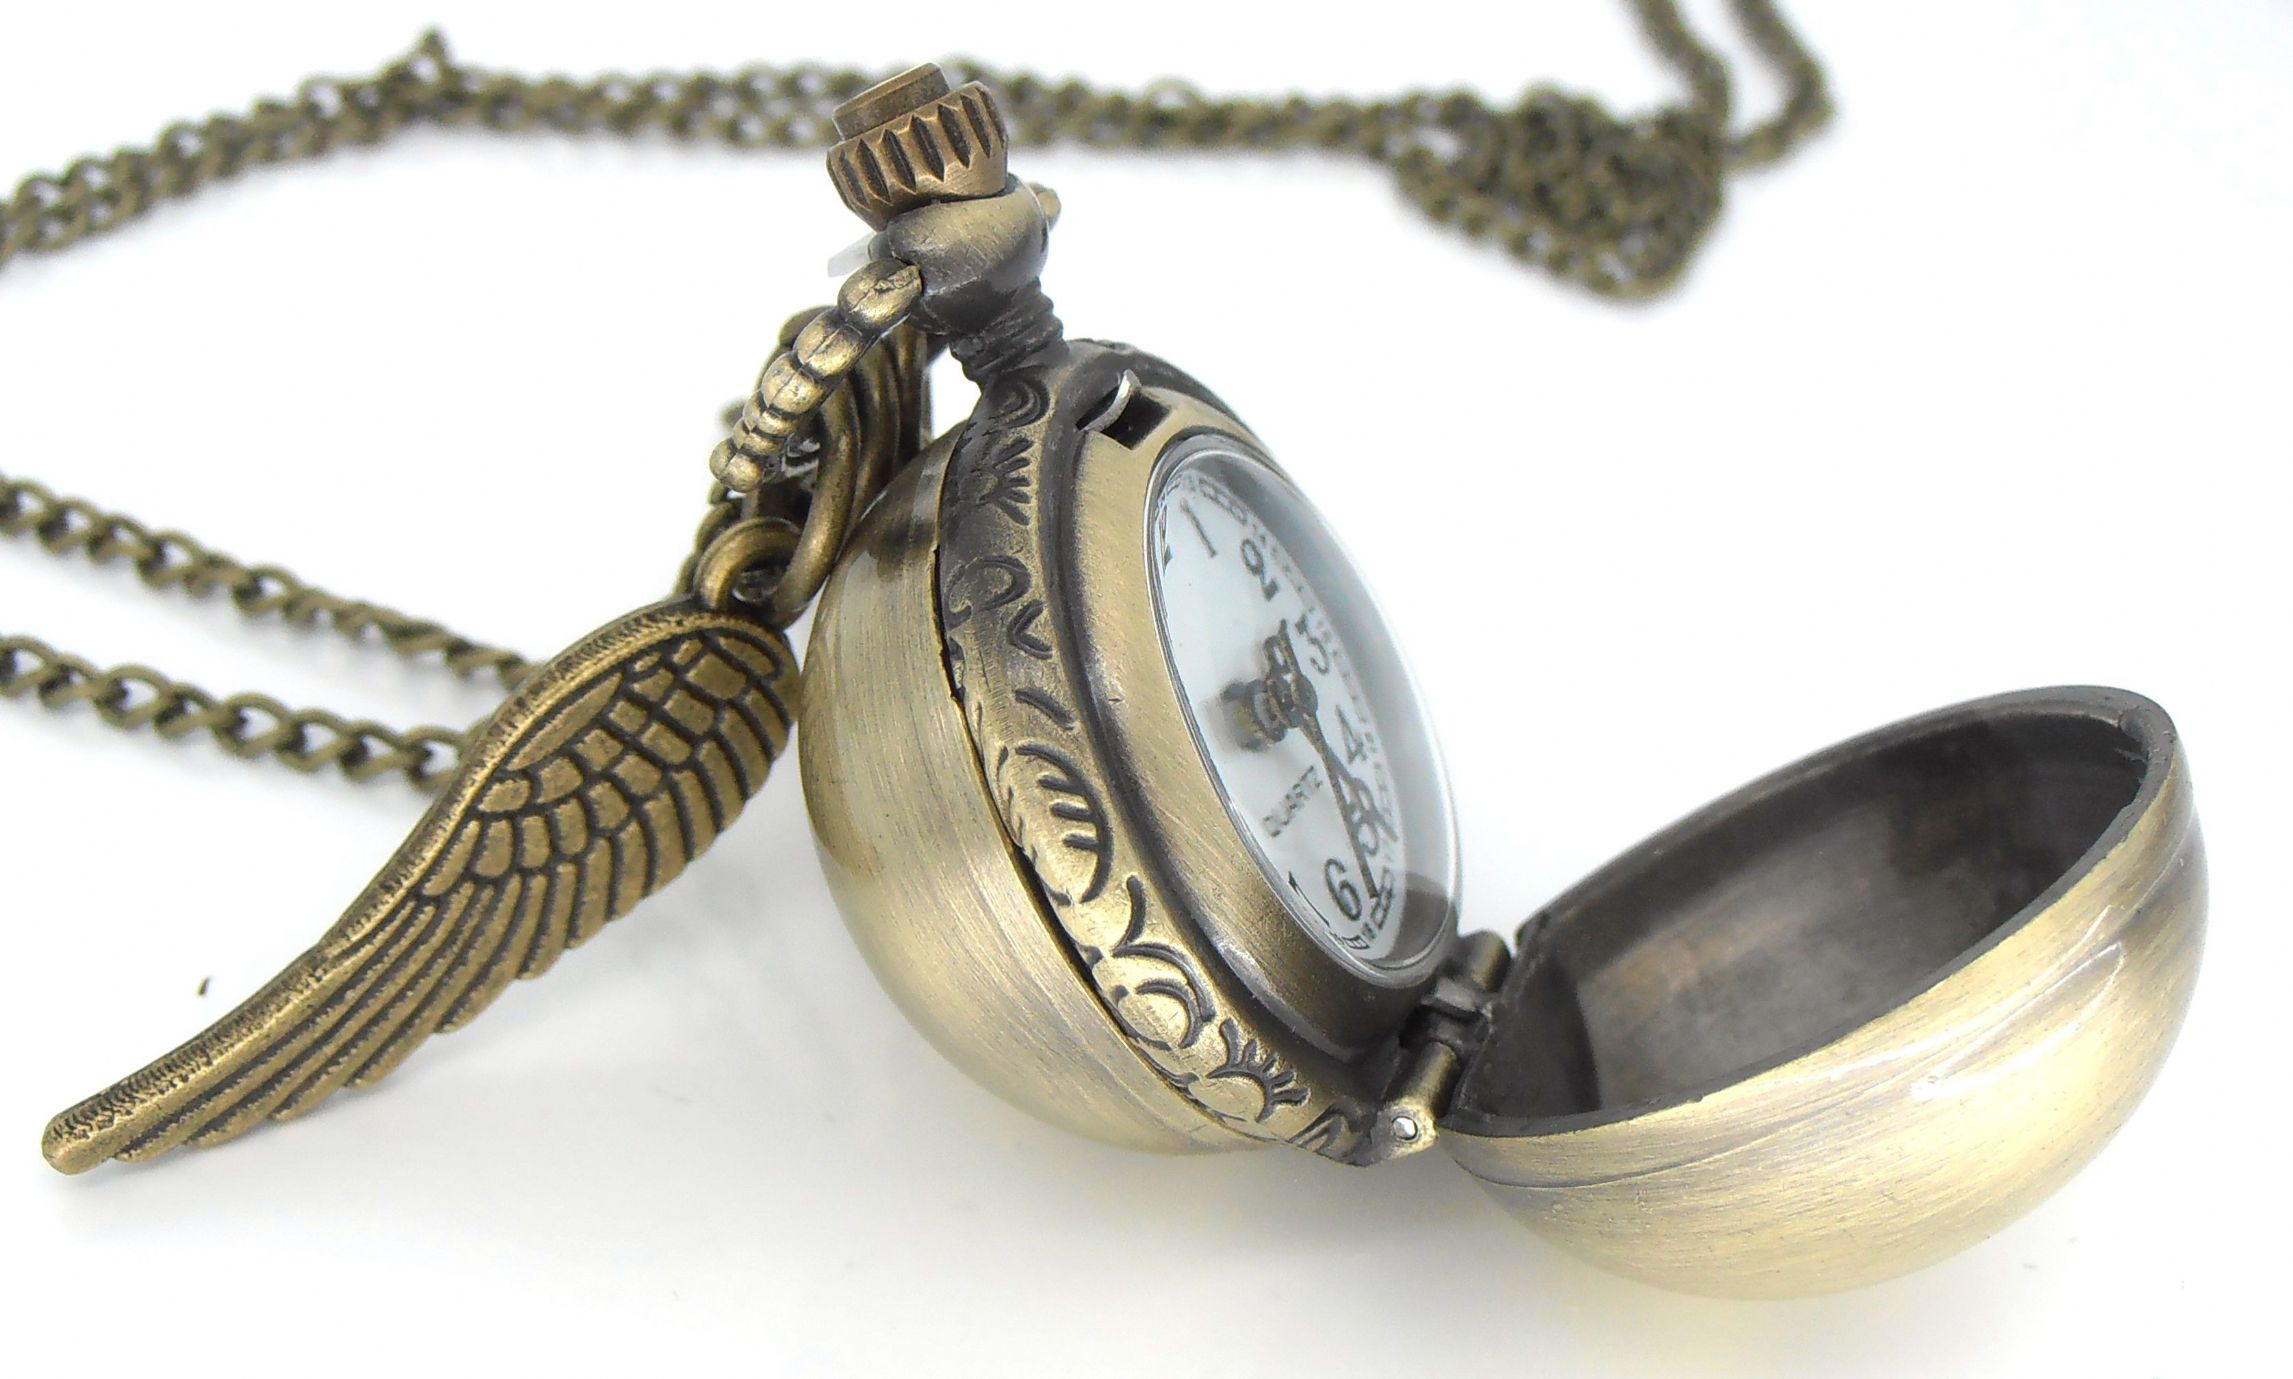 Potter golden snitch watch necklace with double side wings harry potter golden snitch watch necklace with double side wings mozeypictures Images